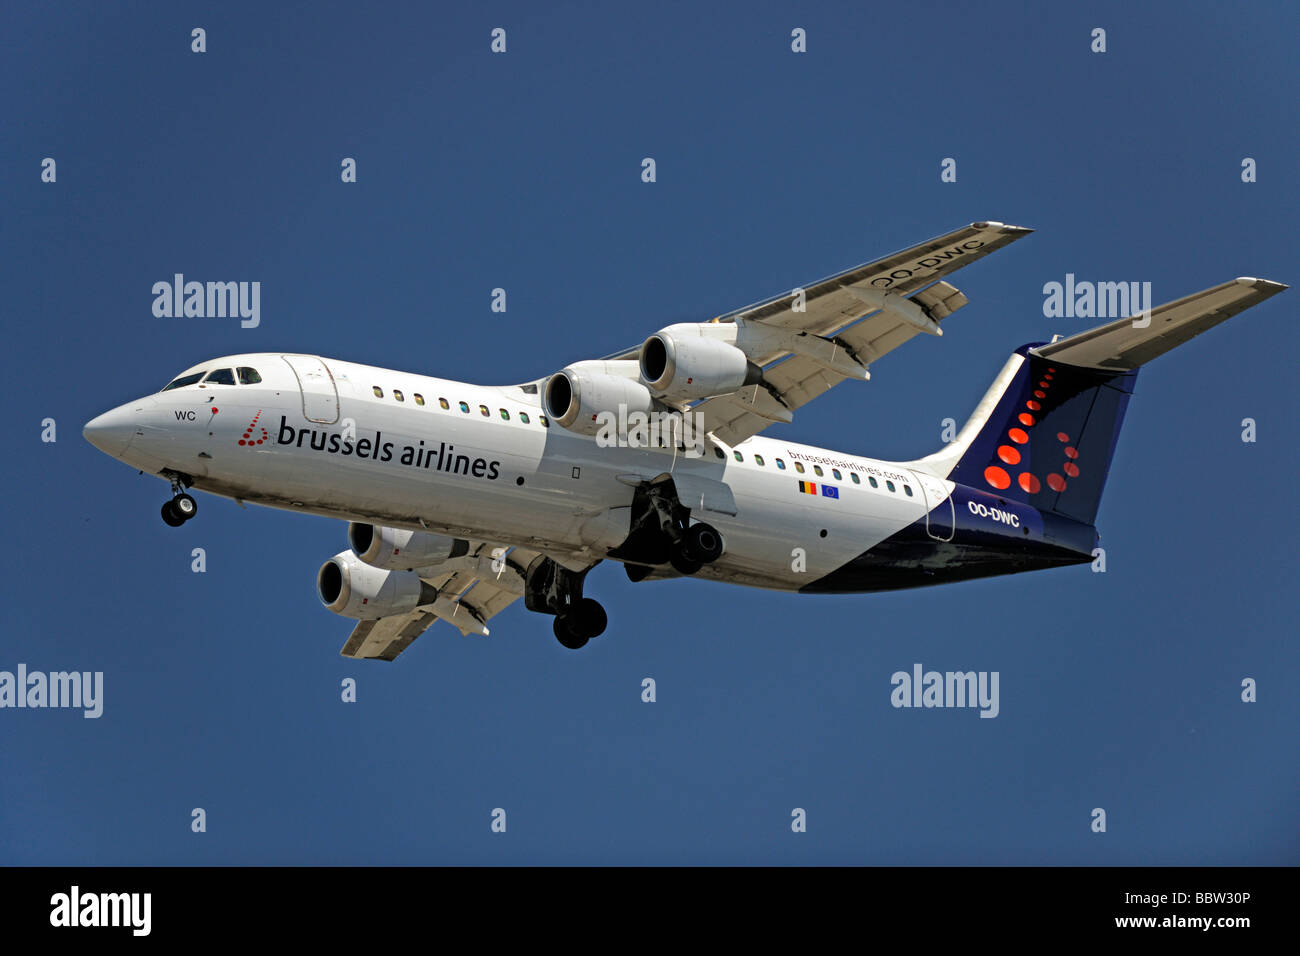 MD 11 of the airline Brussels Airlines - Stock Image